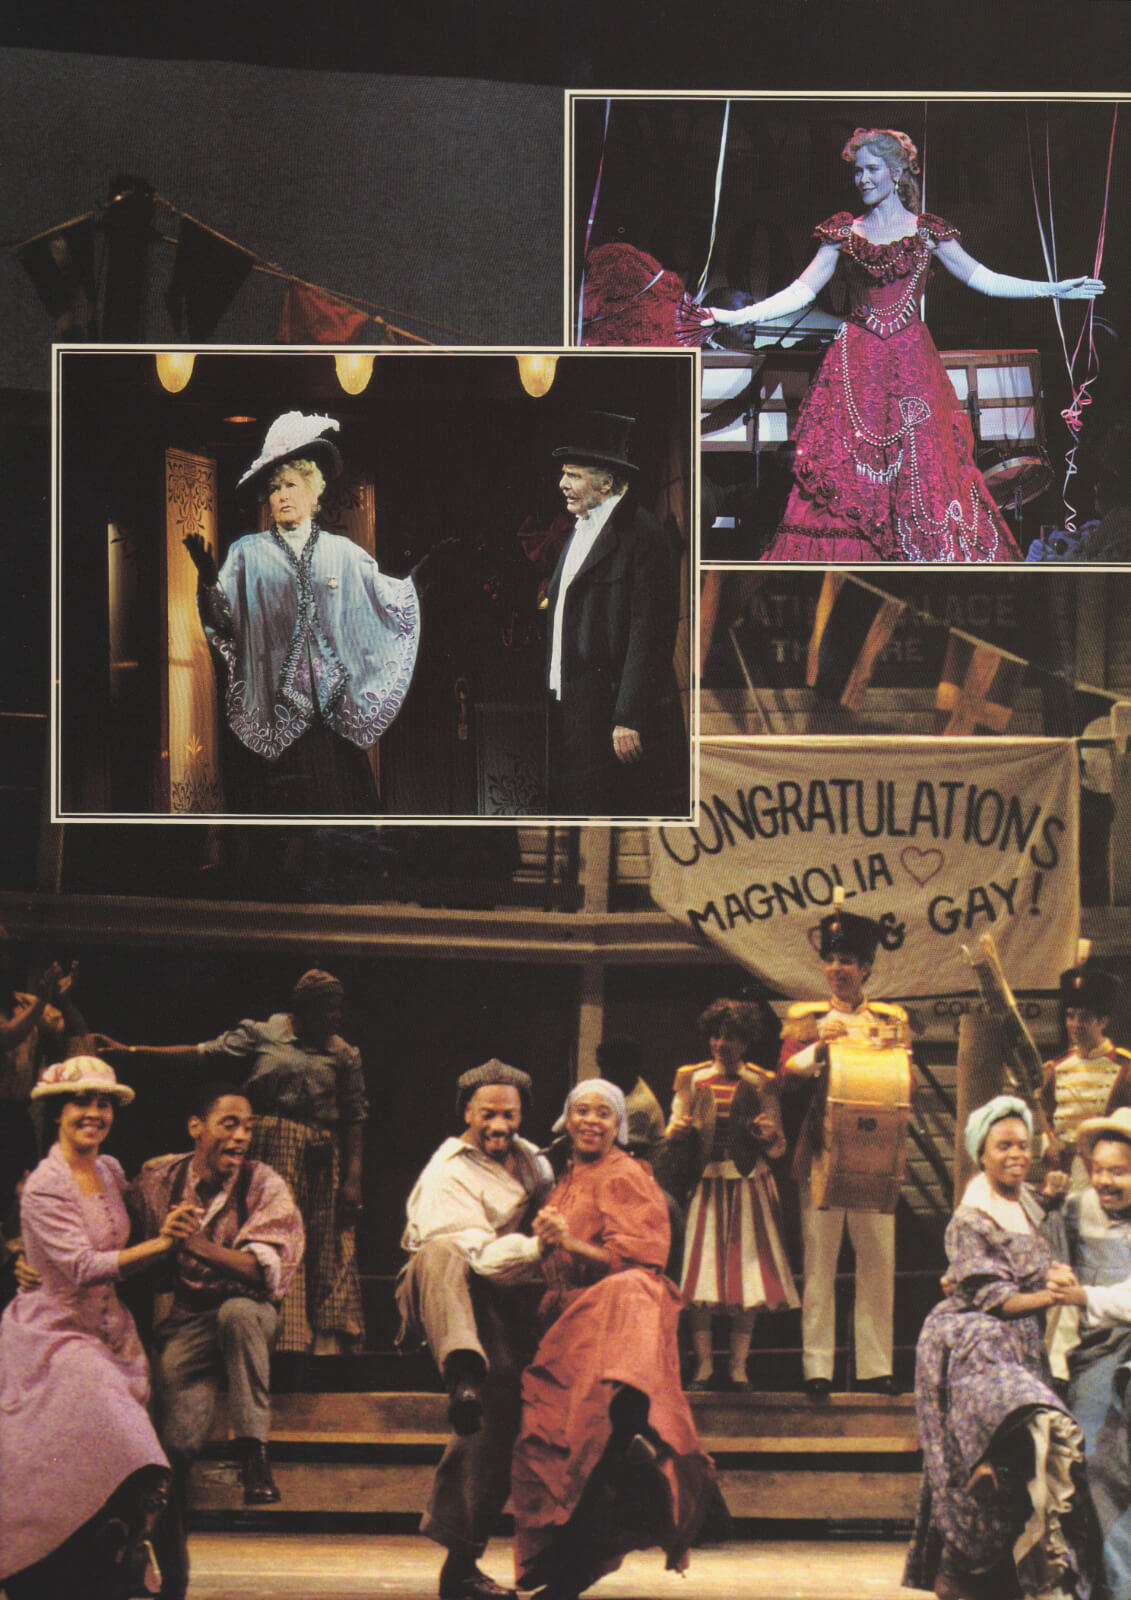 A collage of characters. It shows how people celebrate life — one with music and some dancing albeit not extravagantly dressed; another in beautiful gowns, hats, and suits.